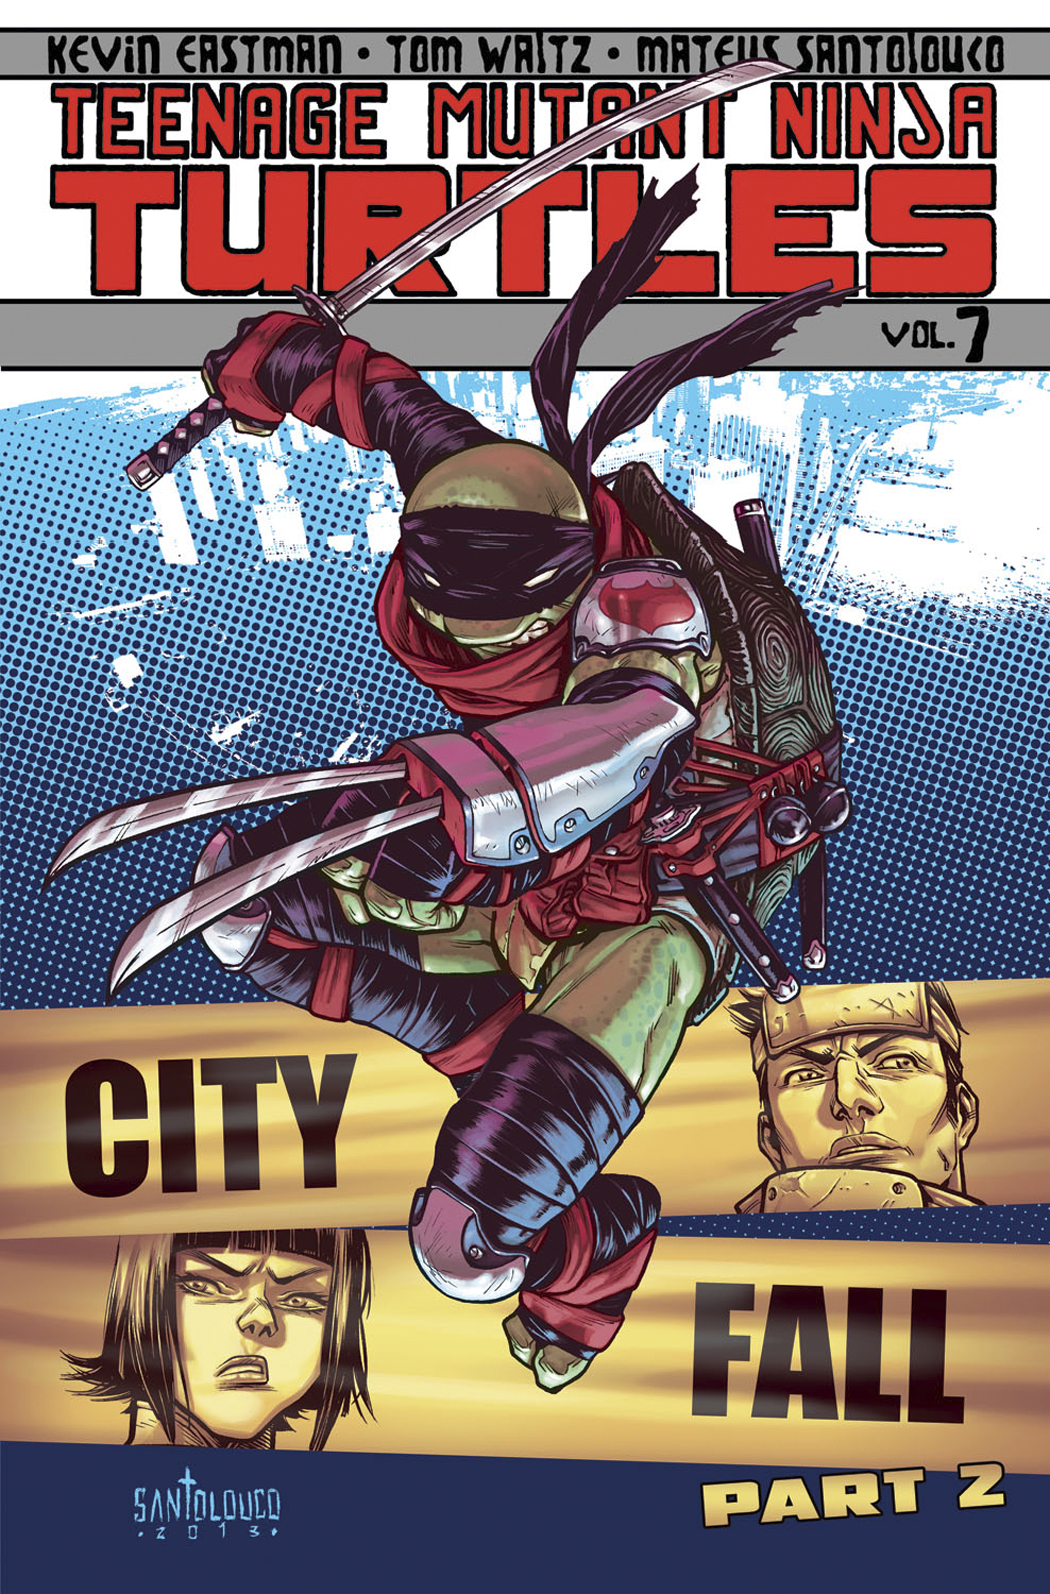 TMNT ONGOING TP VOL 07 CITY FALL PT 2